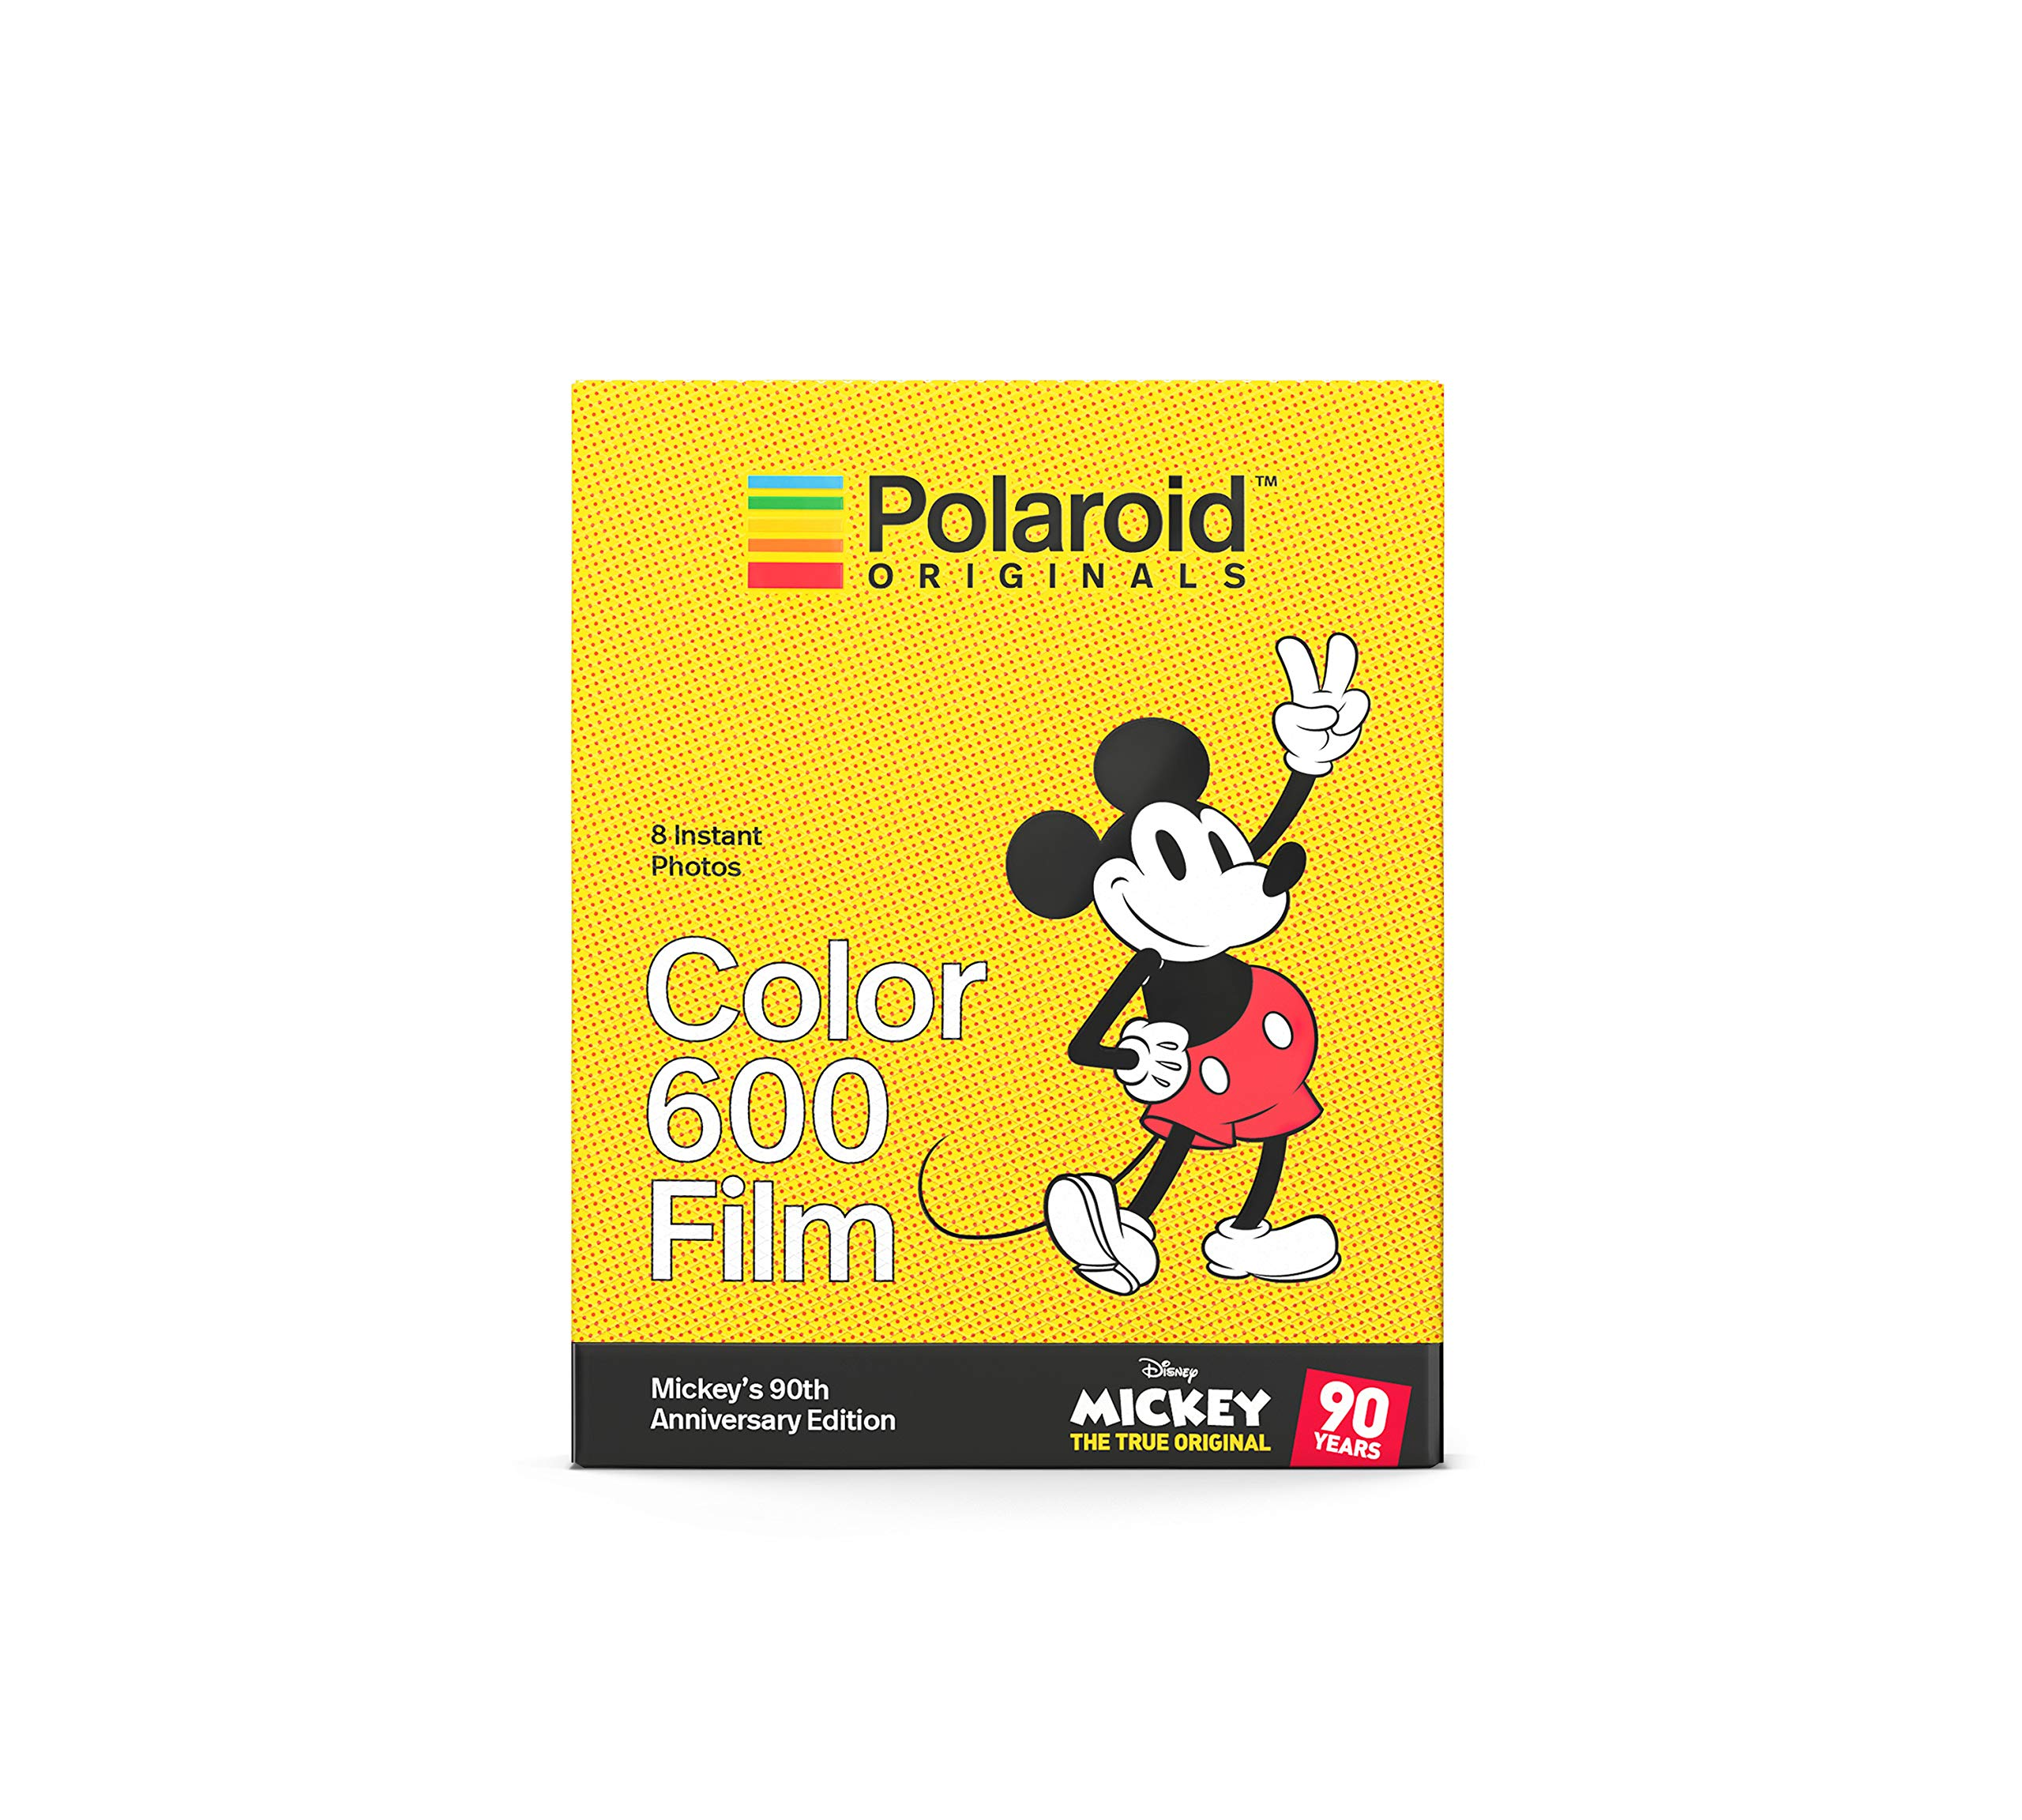 Polaroid Color Film for 600 Mickey 90th Anniversary Edition